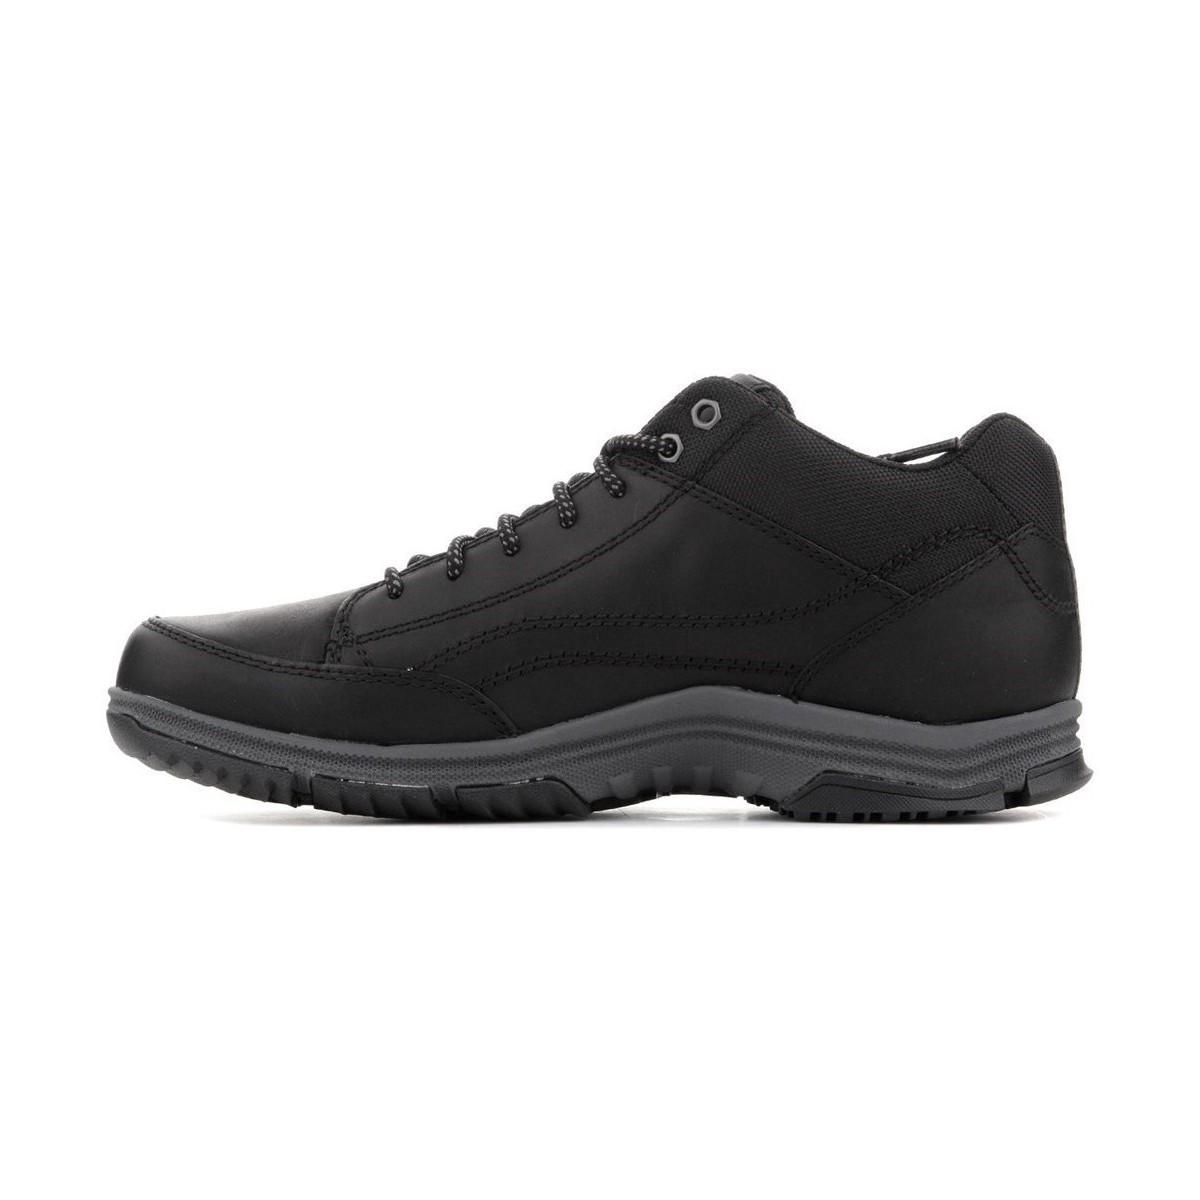 Caterpillar Catepillar Refract Men's Shoes (trainers) In Black for Men